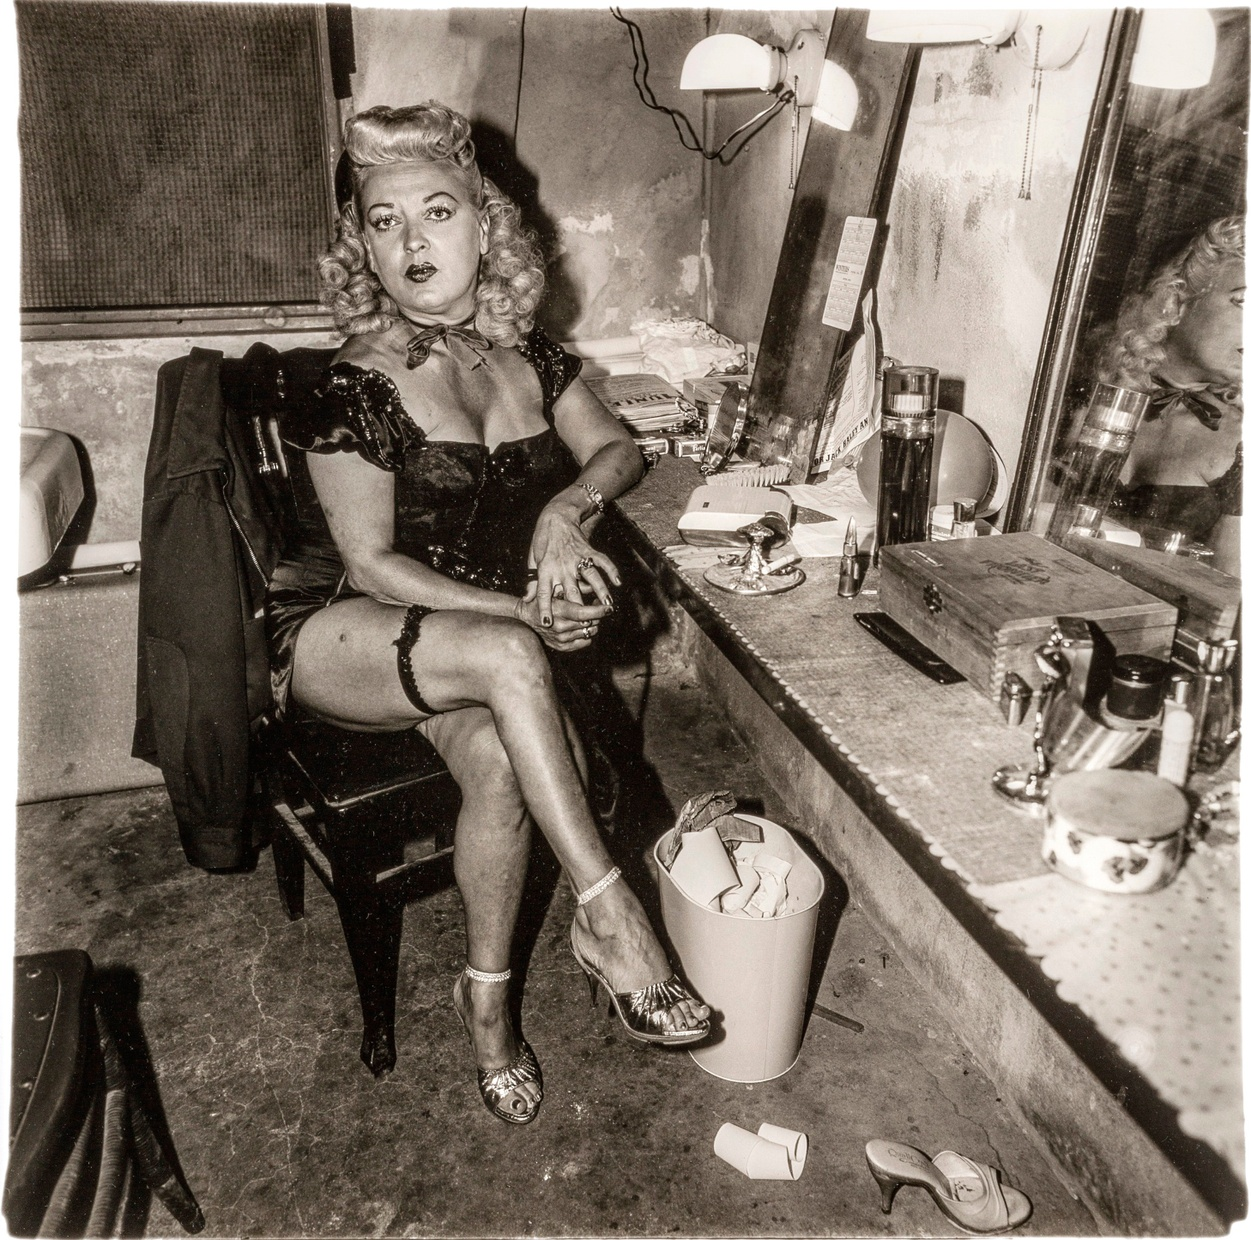 A black and white photograph of a woman sitting in a chair at a dressing room mirror wearing a short, low-cut dress, garter, and high heels, with done-up hair and makeup, looking at the camera with a strait face.